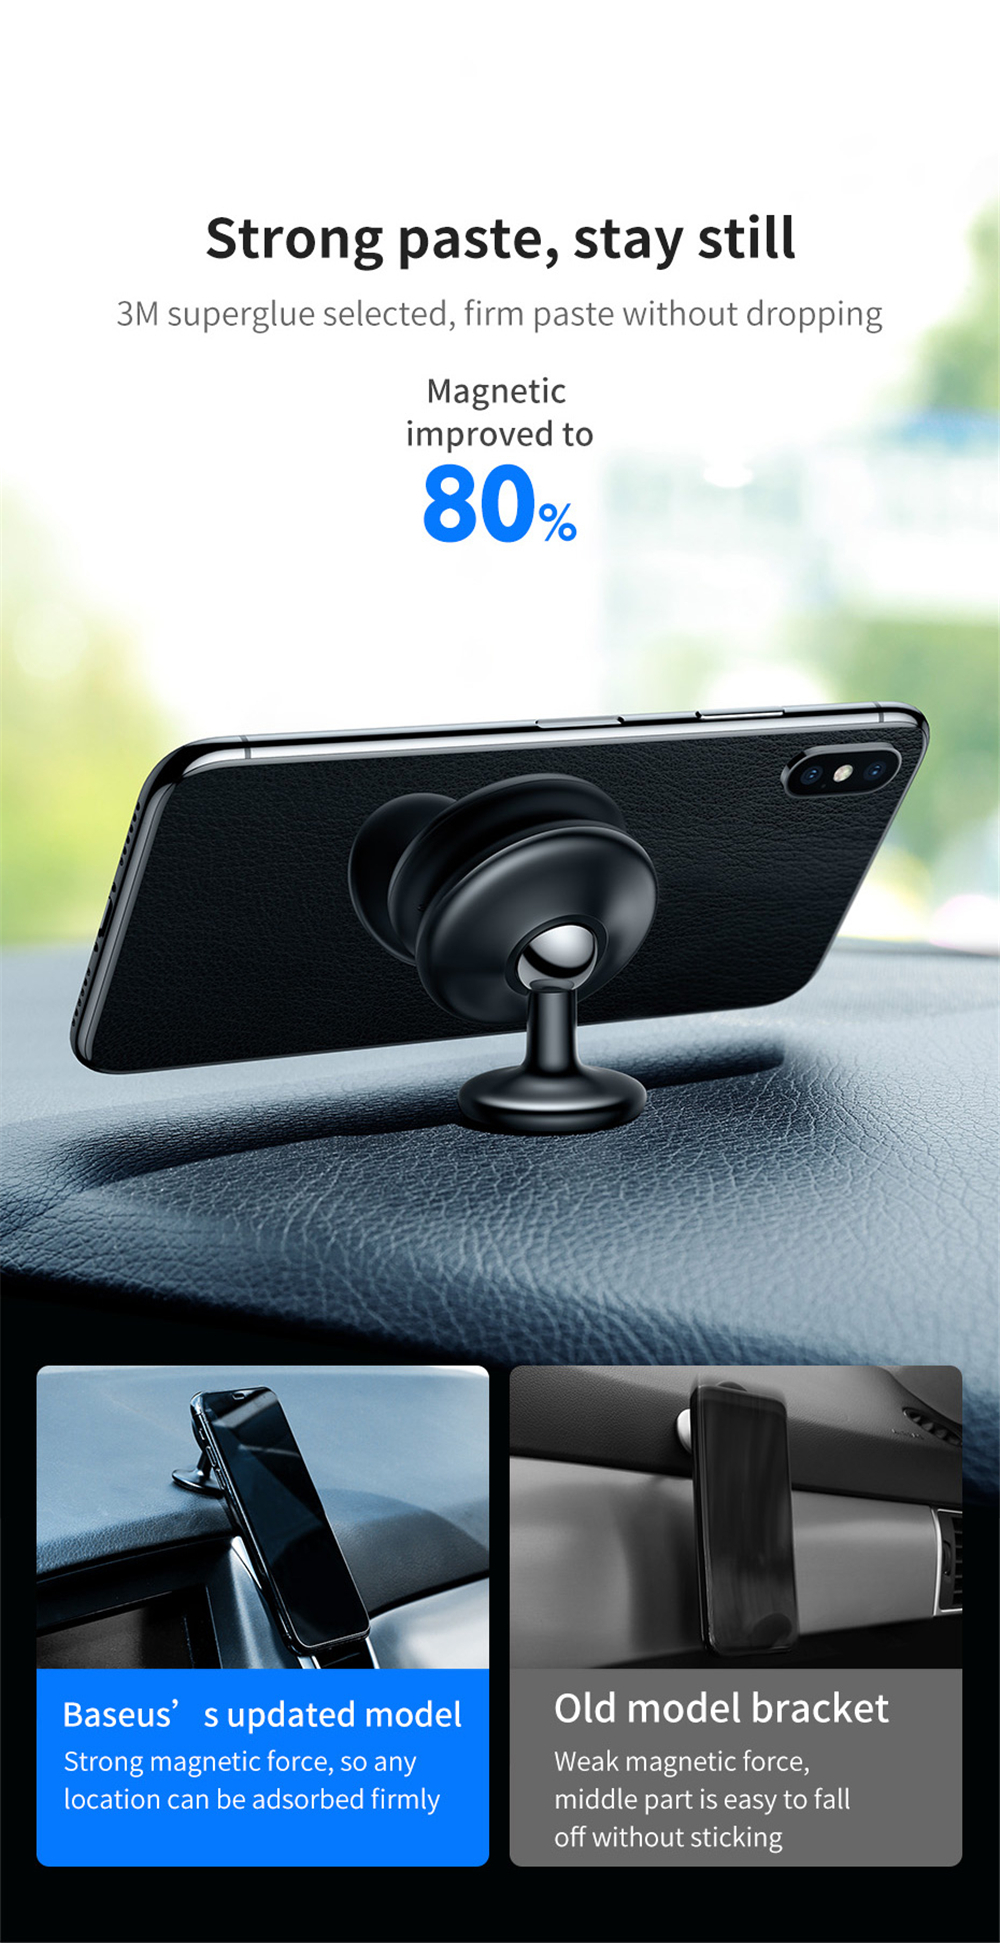 Baseus Magnetic Car Phone Holder 360 Degree Rotation for iPhone XS Max Sticker Dashboard Stand